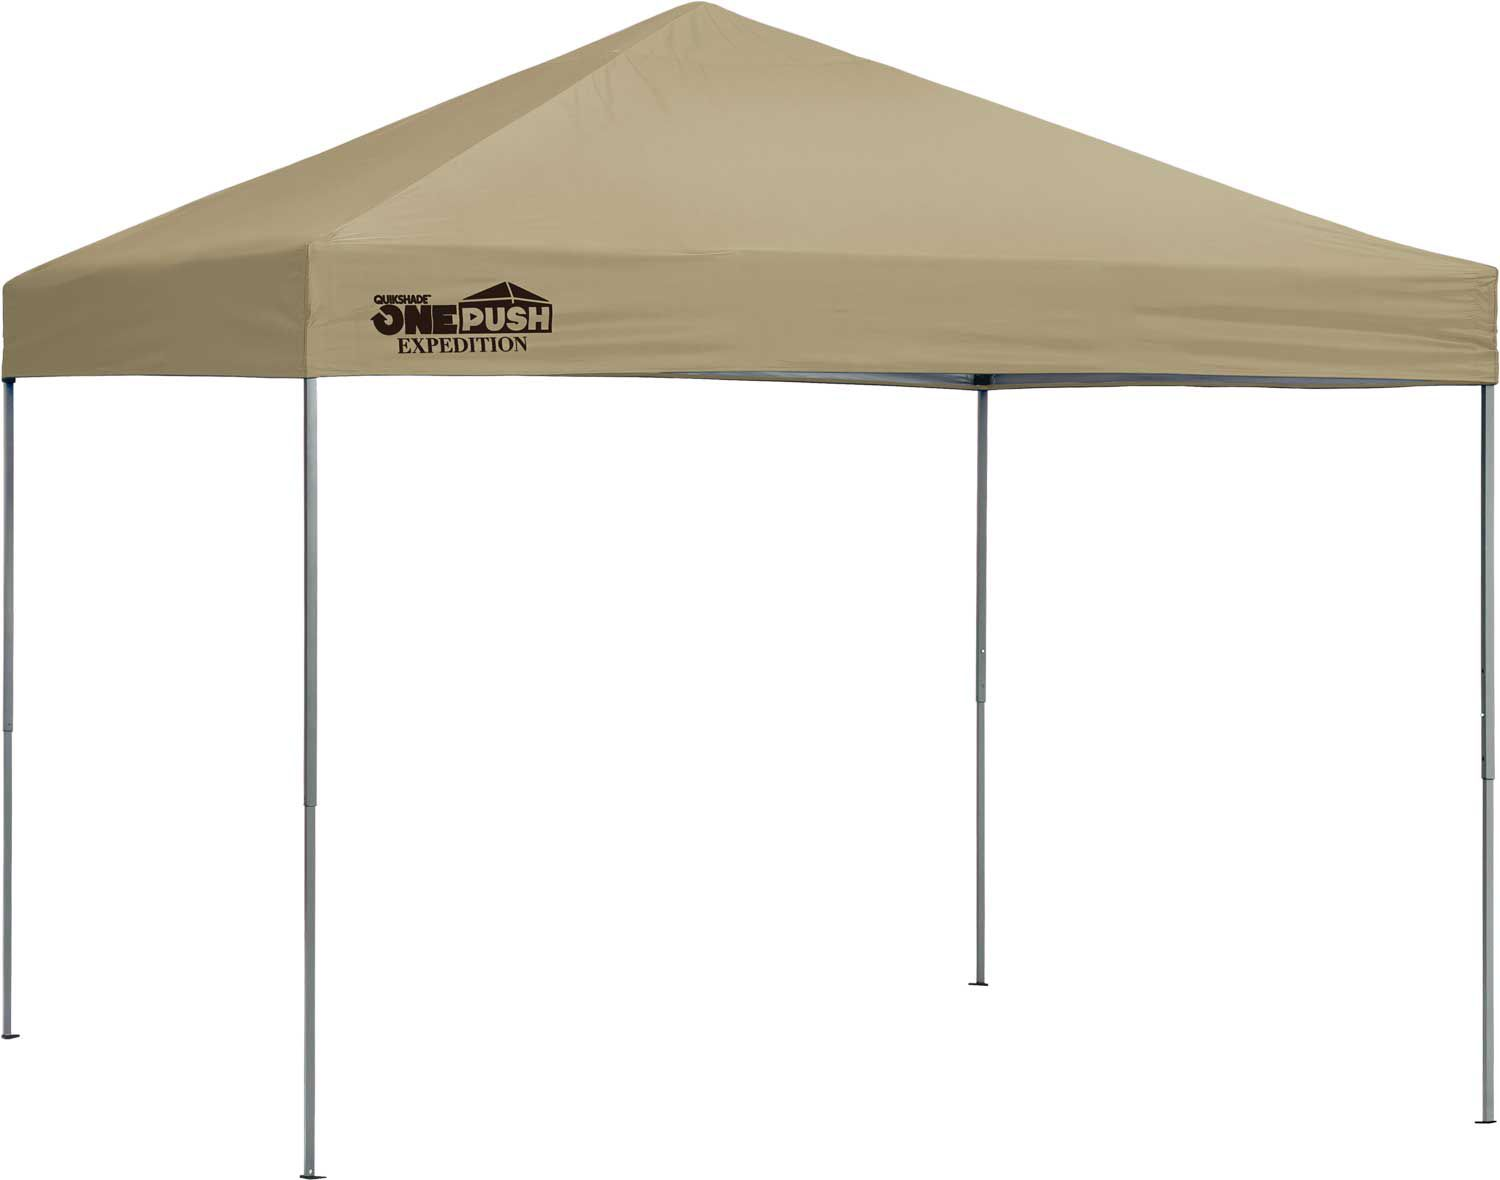 1  sc 1 st  DICKu0027S Sporting Goods & Quik Shade 10u0027 x 10u0027 Expedition One Push Straight Leg Canopy ...